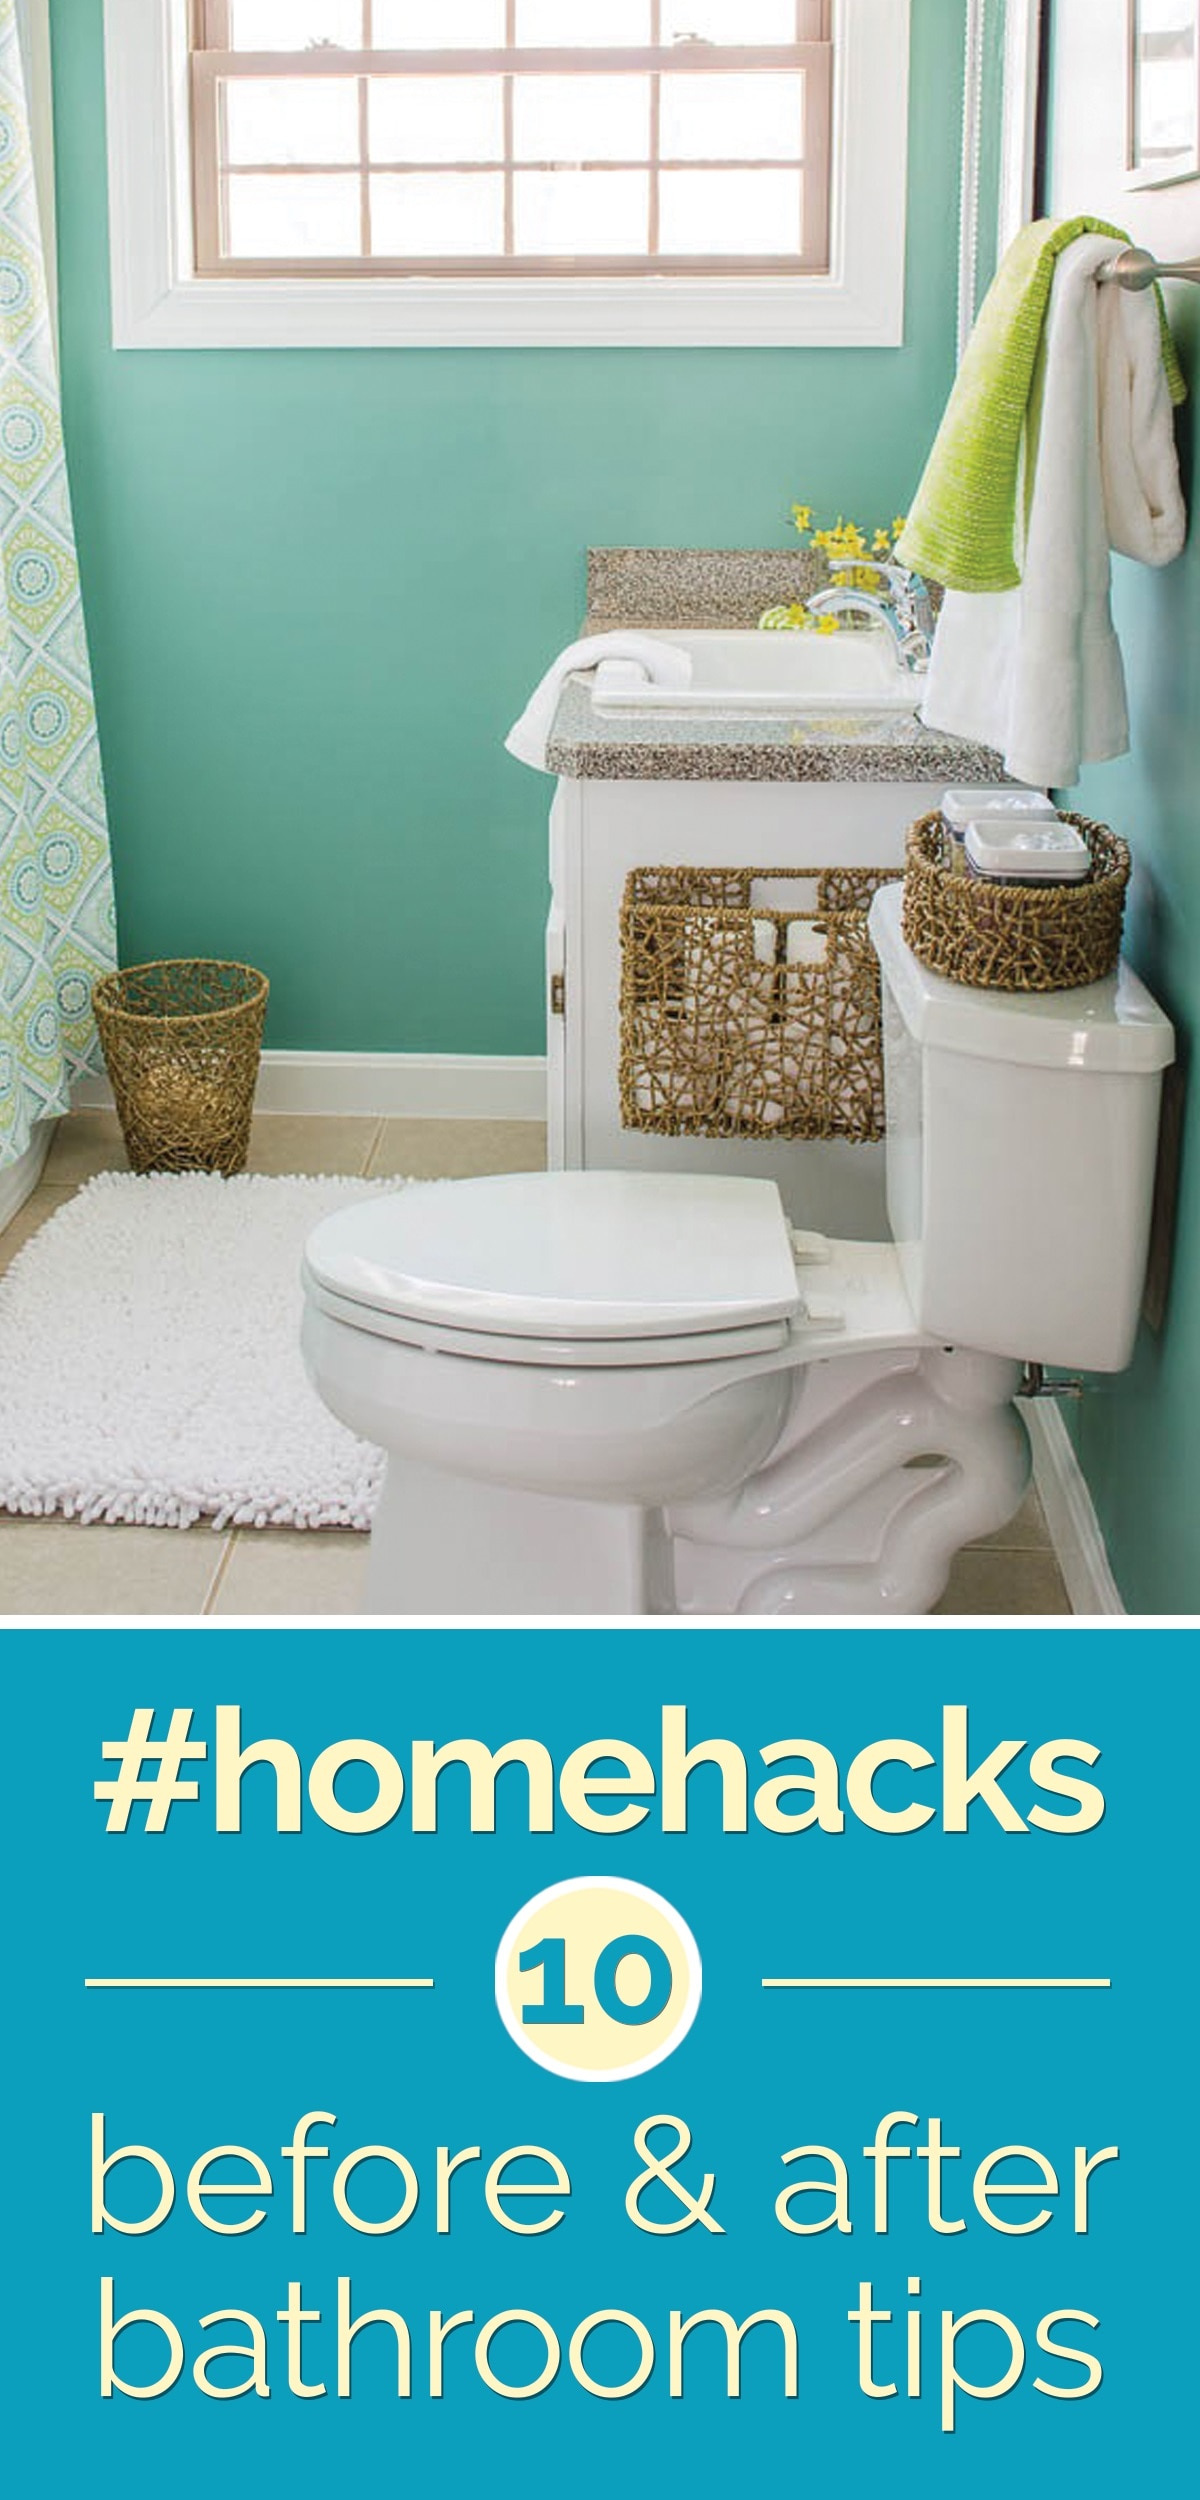 diy-homehacks-before-and-after-bathroom-tips